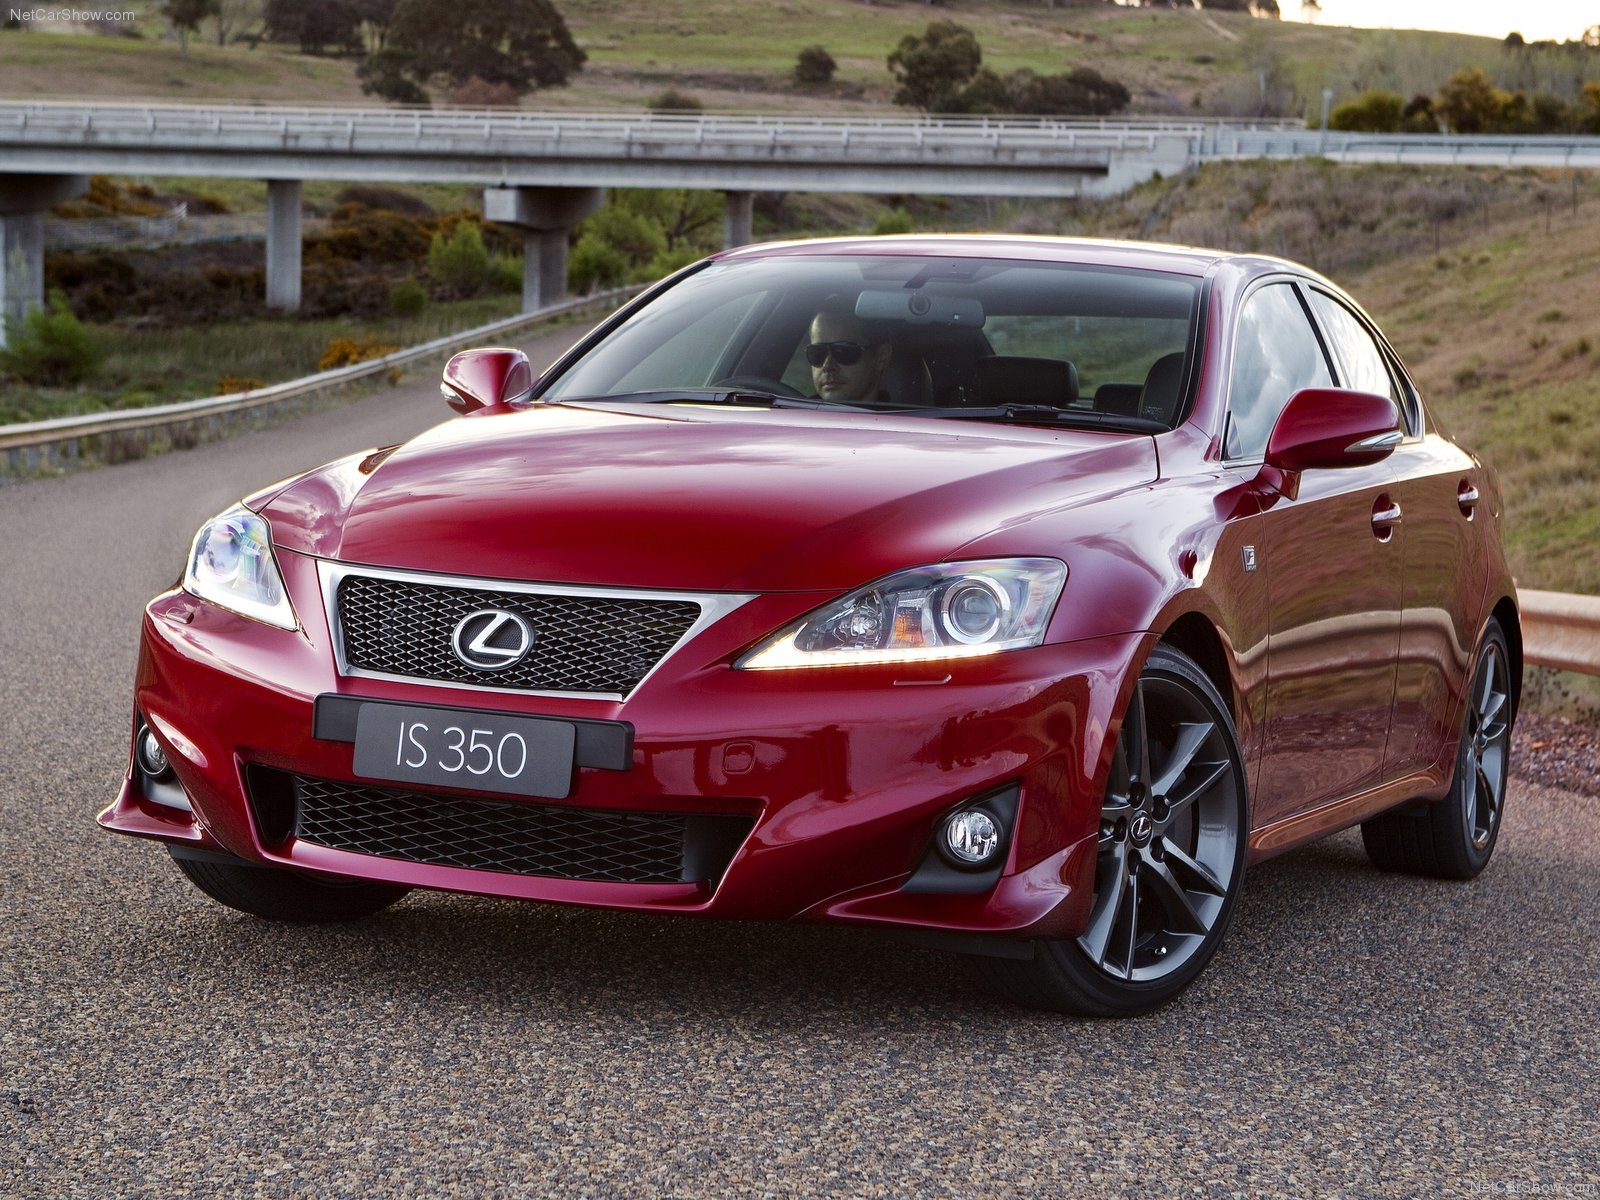 lexus is 350 f sport photos photogallery with 53 pics. Black Bedroom Furniture Sets. Home Design Ideas